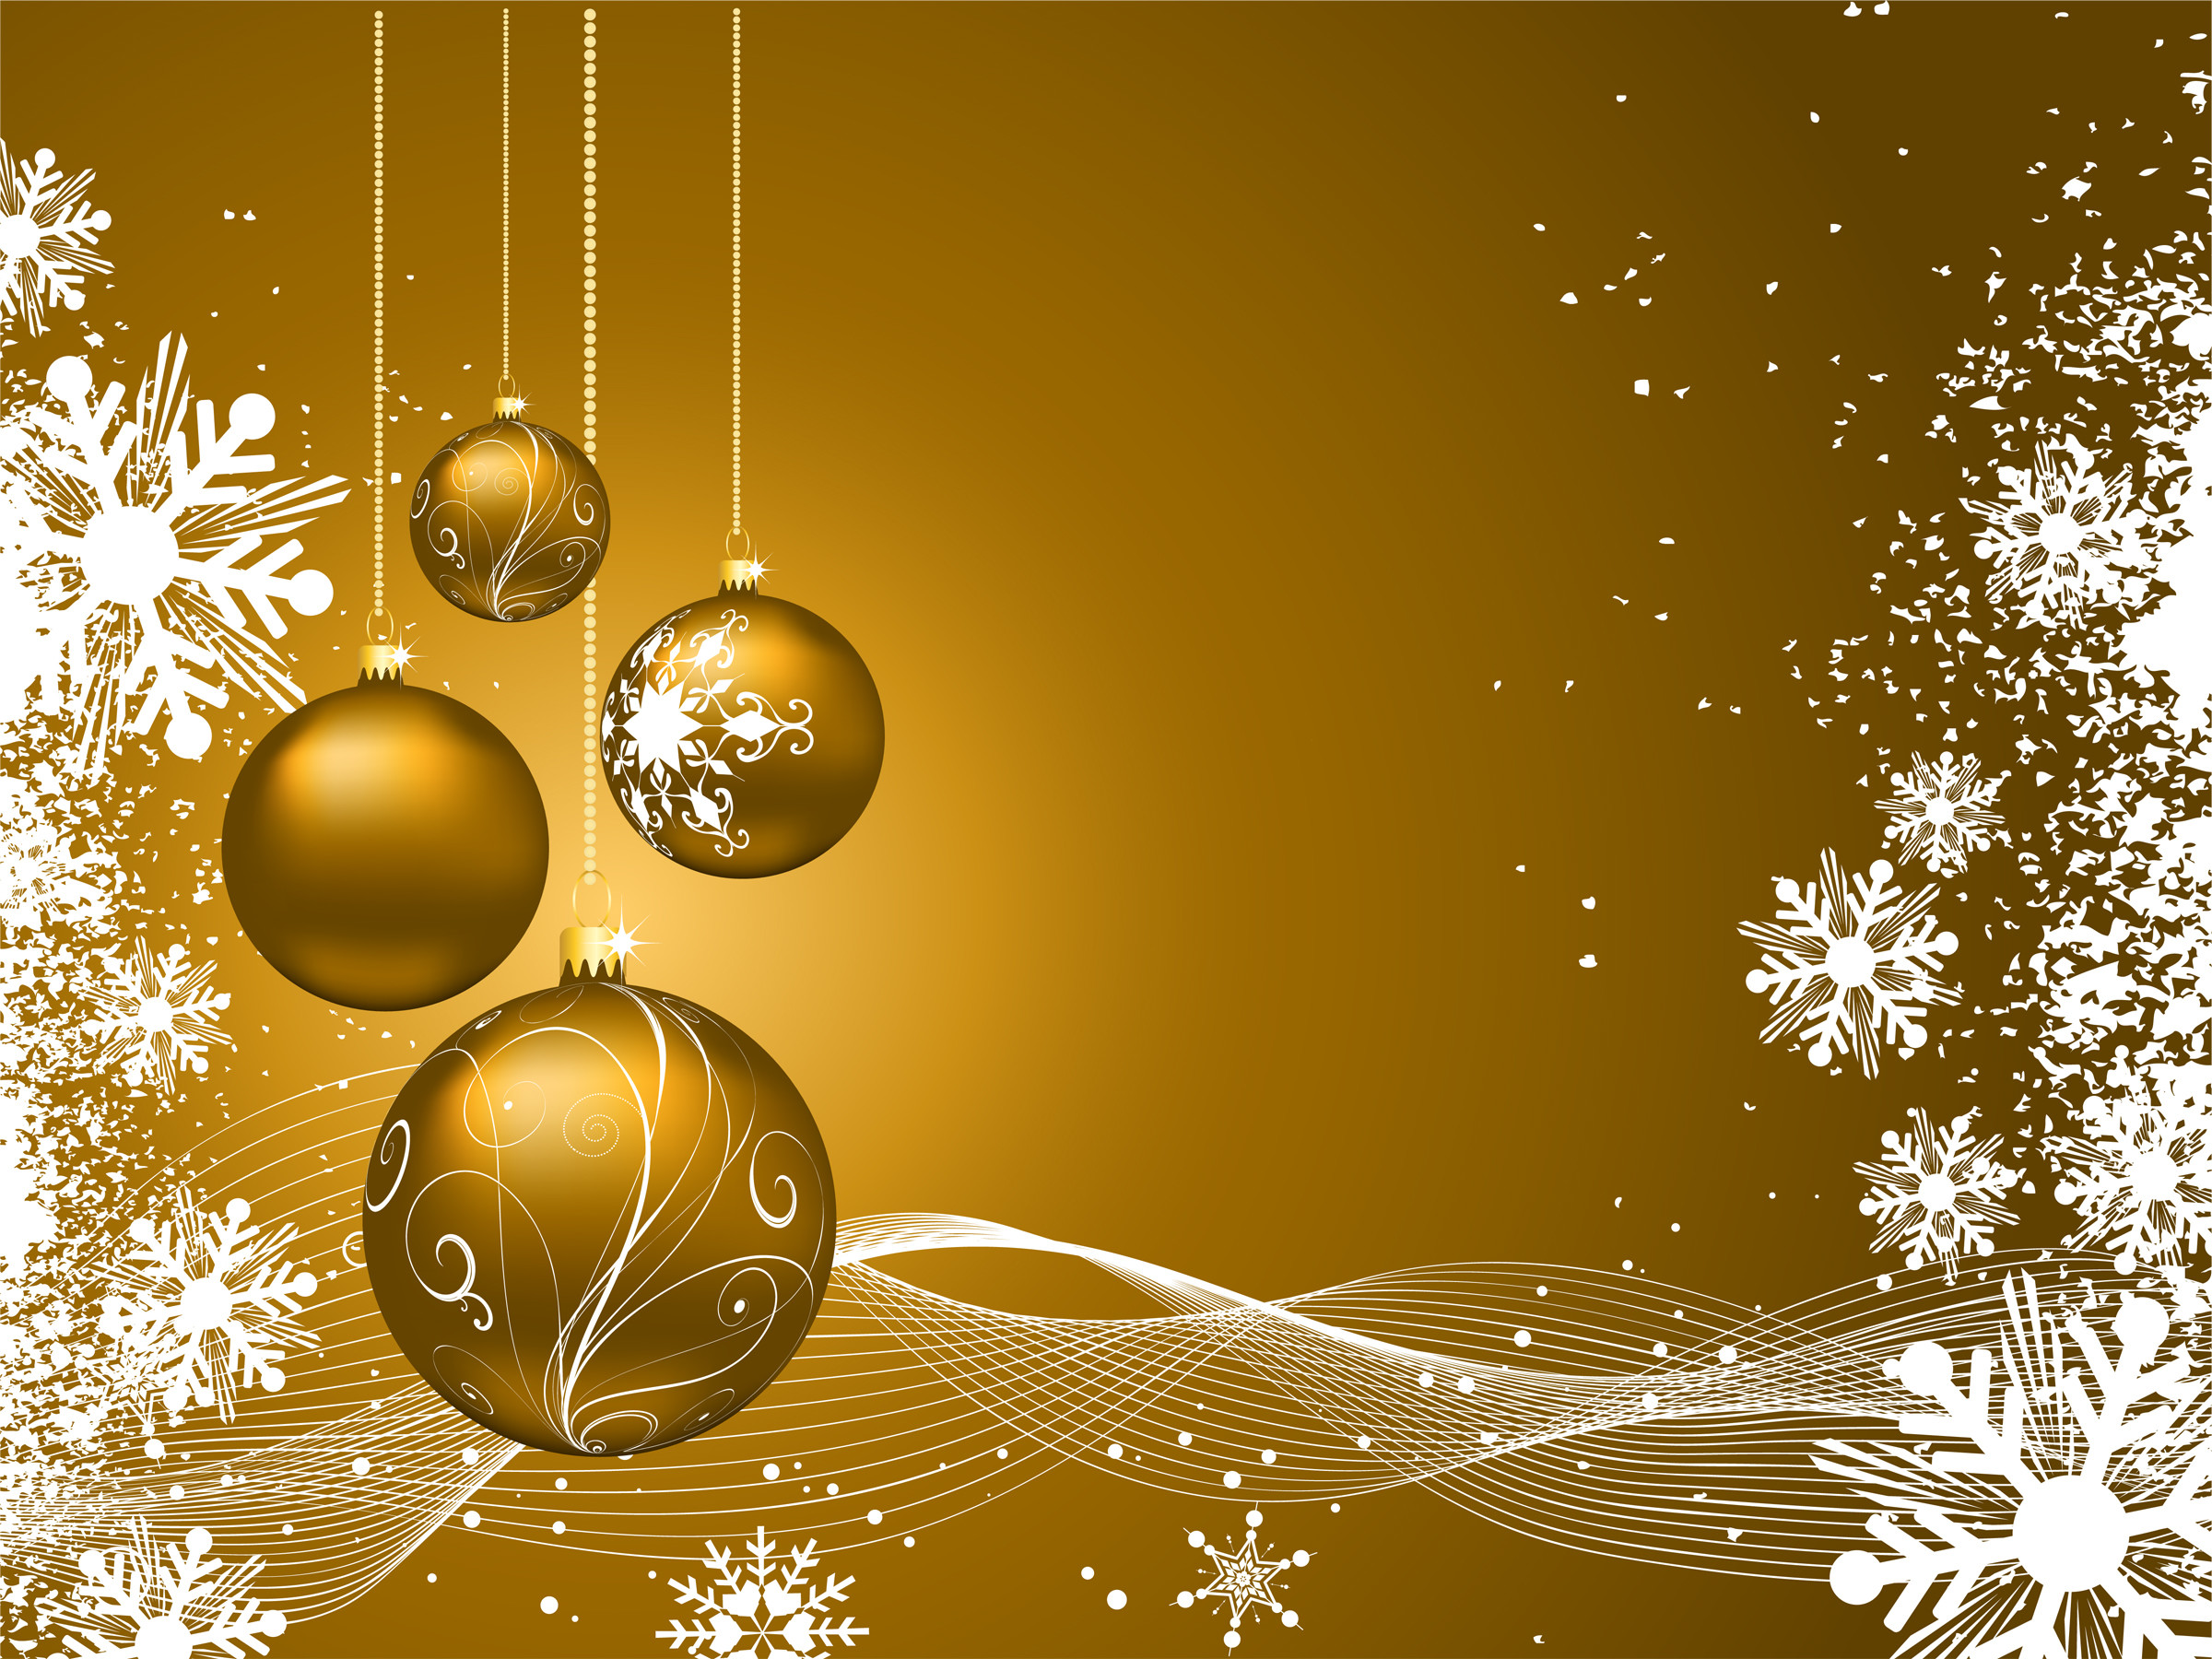 Merry christmas hd wallpapers 2015